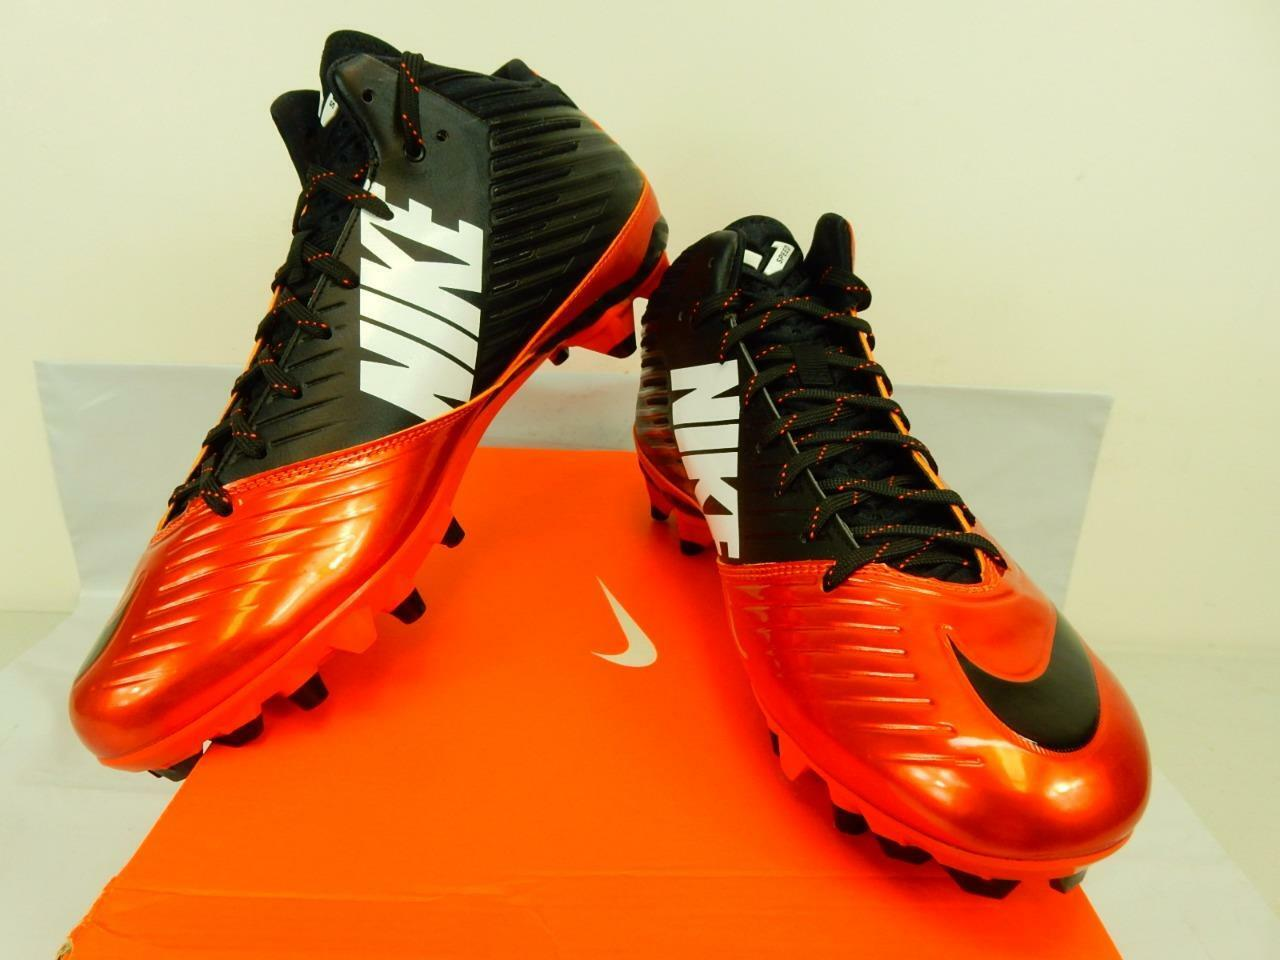 NIB 105 Mens Nike Nike Nike Vapor Speed Mid 3 4 TD Football Cleats 643155 800 U.S. Size 10 0896c7